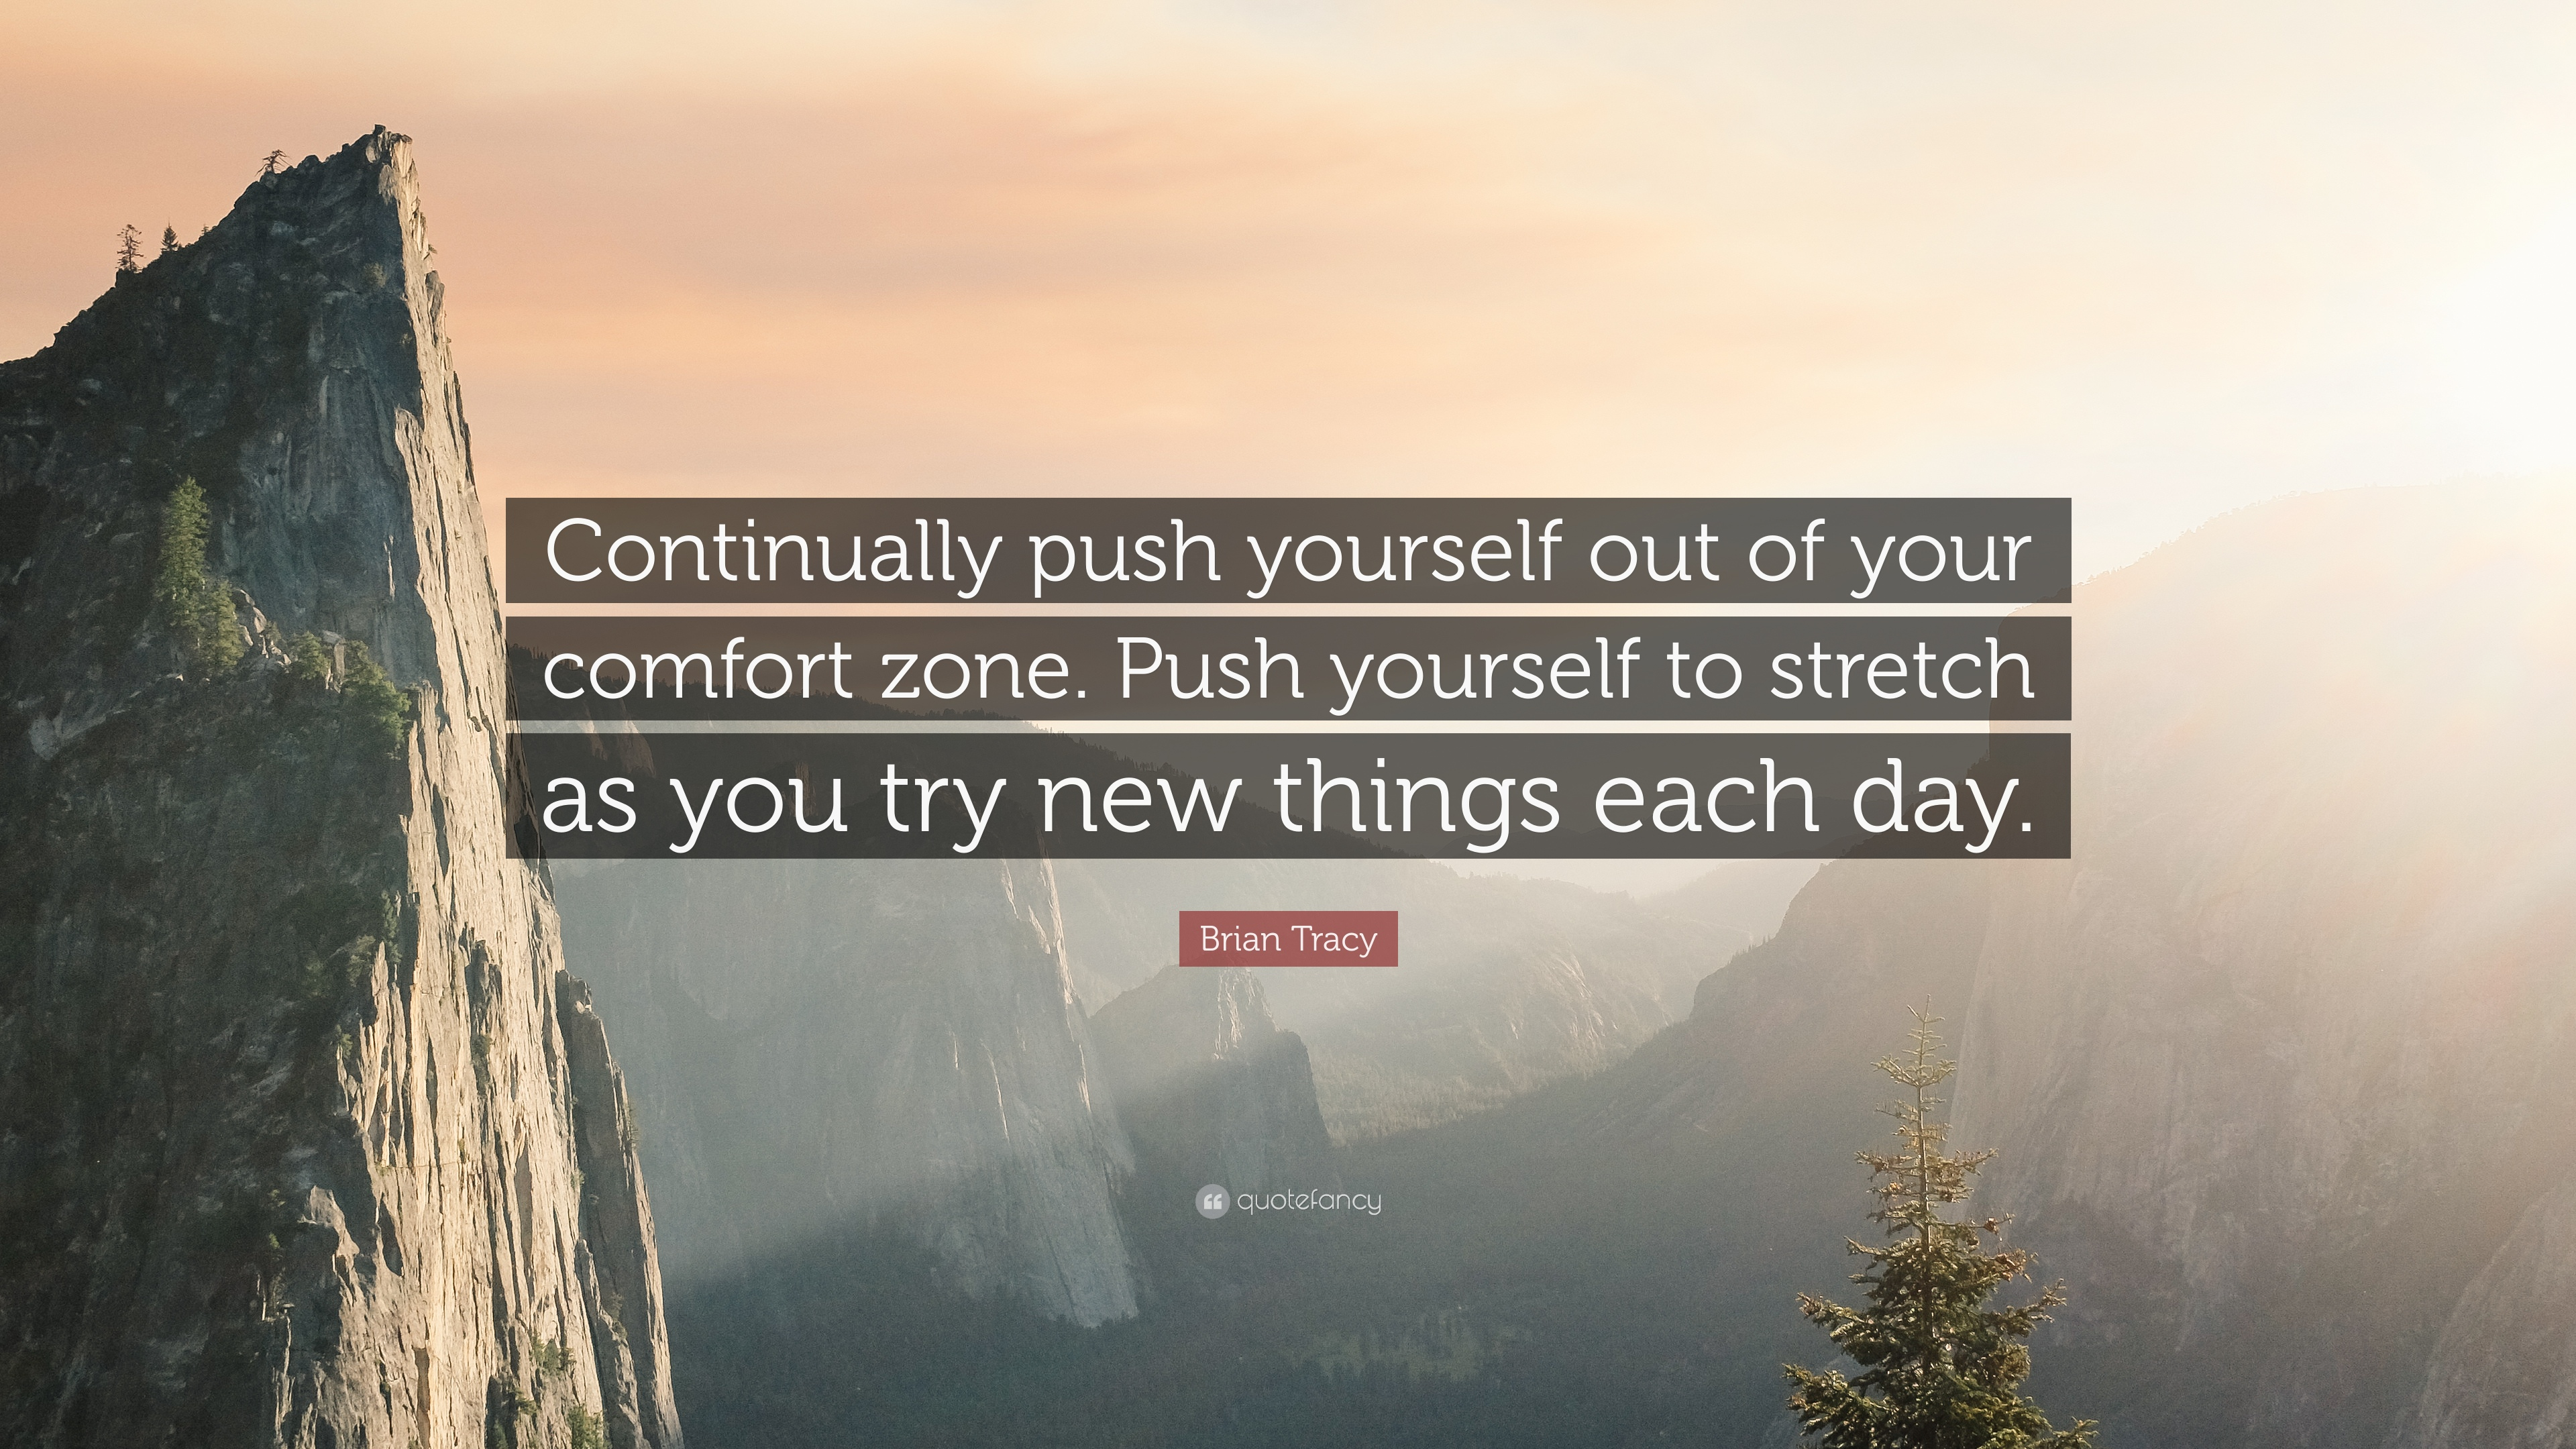 Brian Tracy Quote Continually Push Yourself Out Of Your Comfort